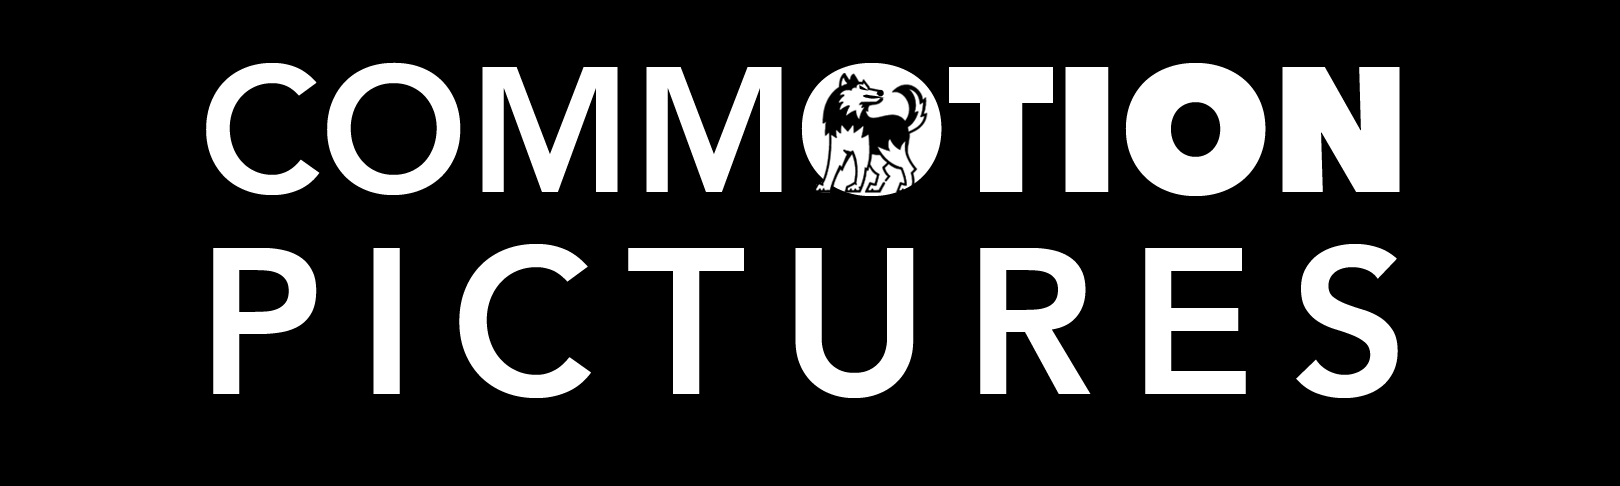 COMMOTION PICTURES